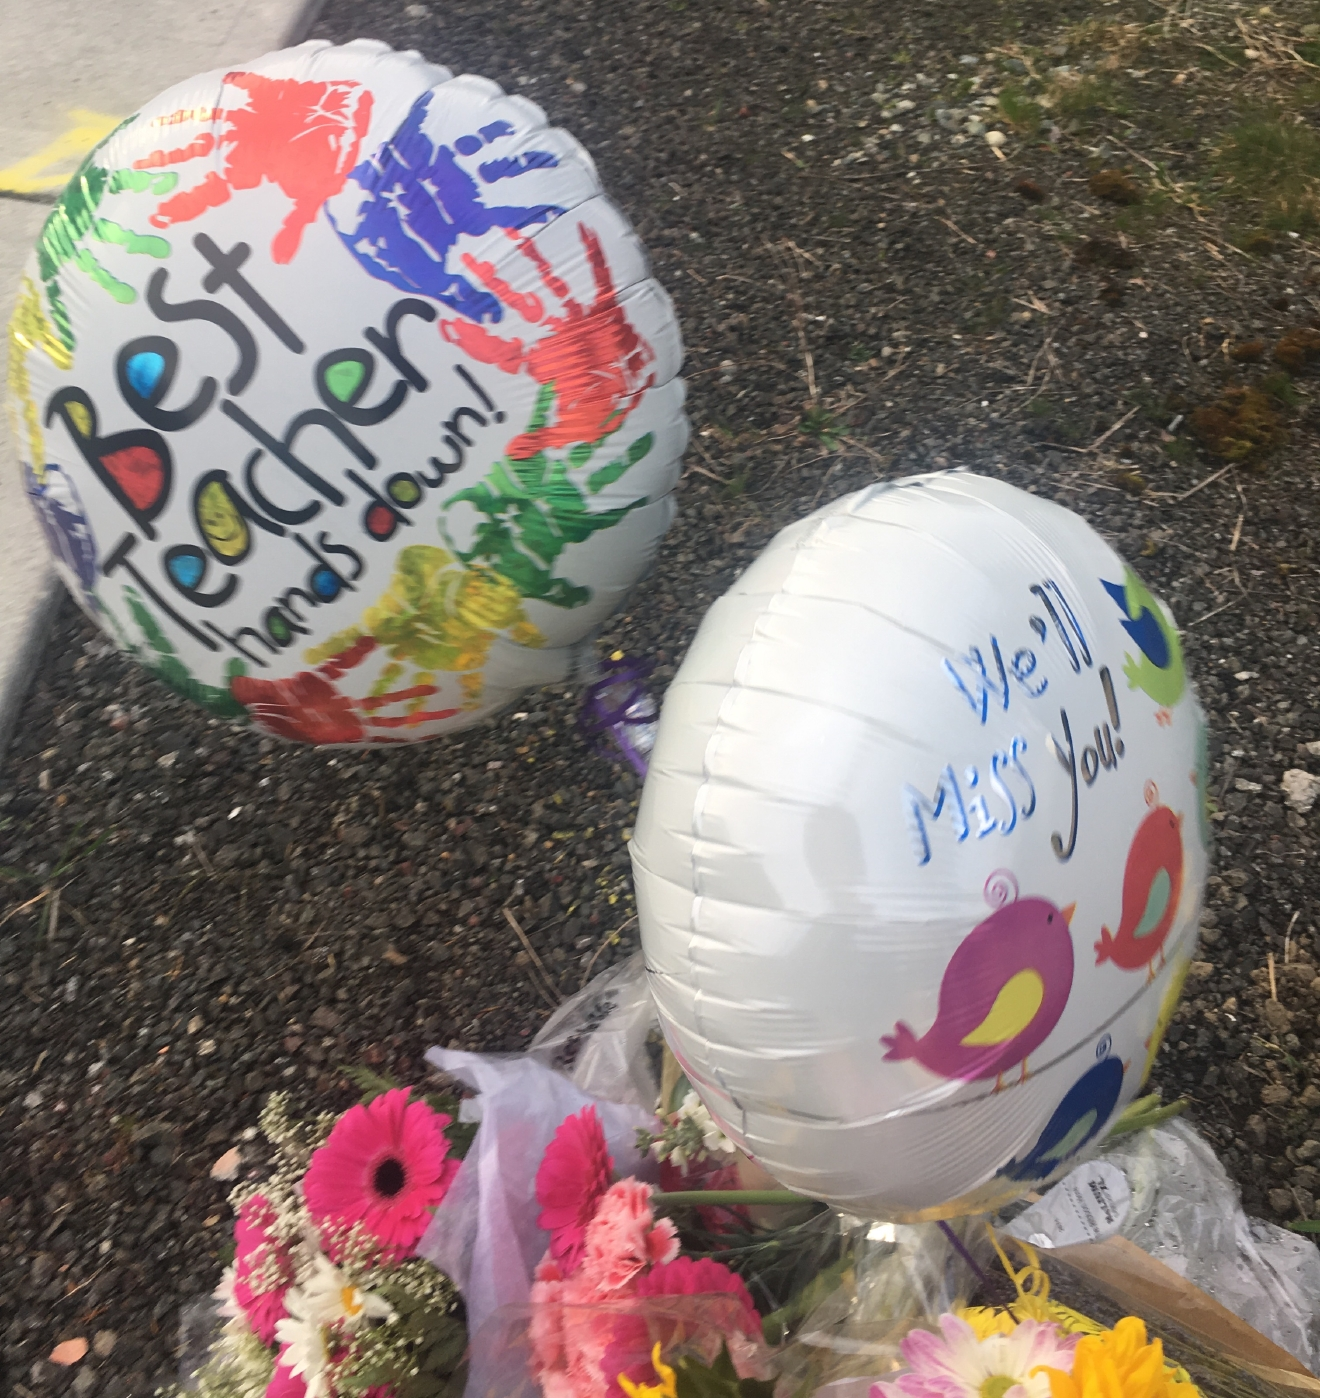 A growing number of flower bouquets, balloons, and heartbreaking messages have been placed near the intersection to honor Amy Higgins. (KOMO Photo)